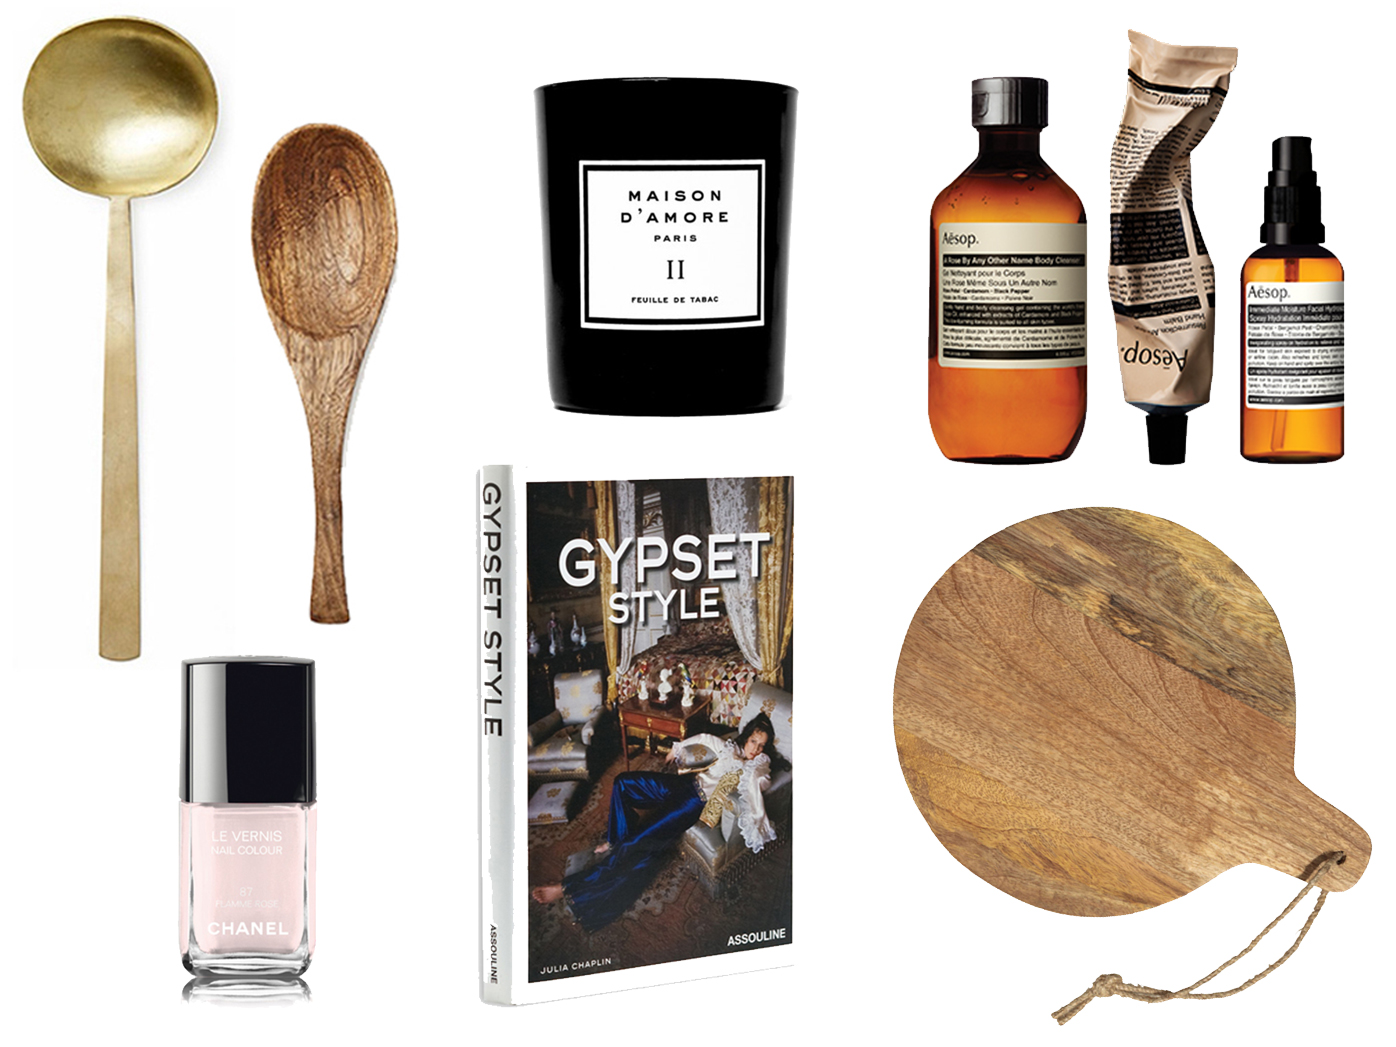 No matter the occasion, a thank-you gift will never go unnoticed by your host (and guarantee you a few extra servings of eggnog). Click through for our gift recommendations for even the most discerning of party planners - and they're all under $100.